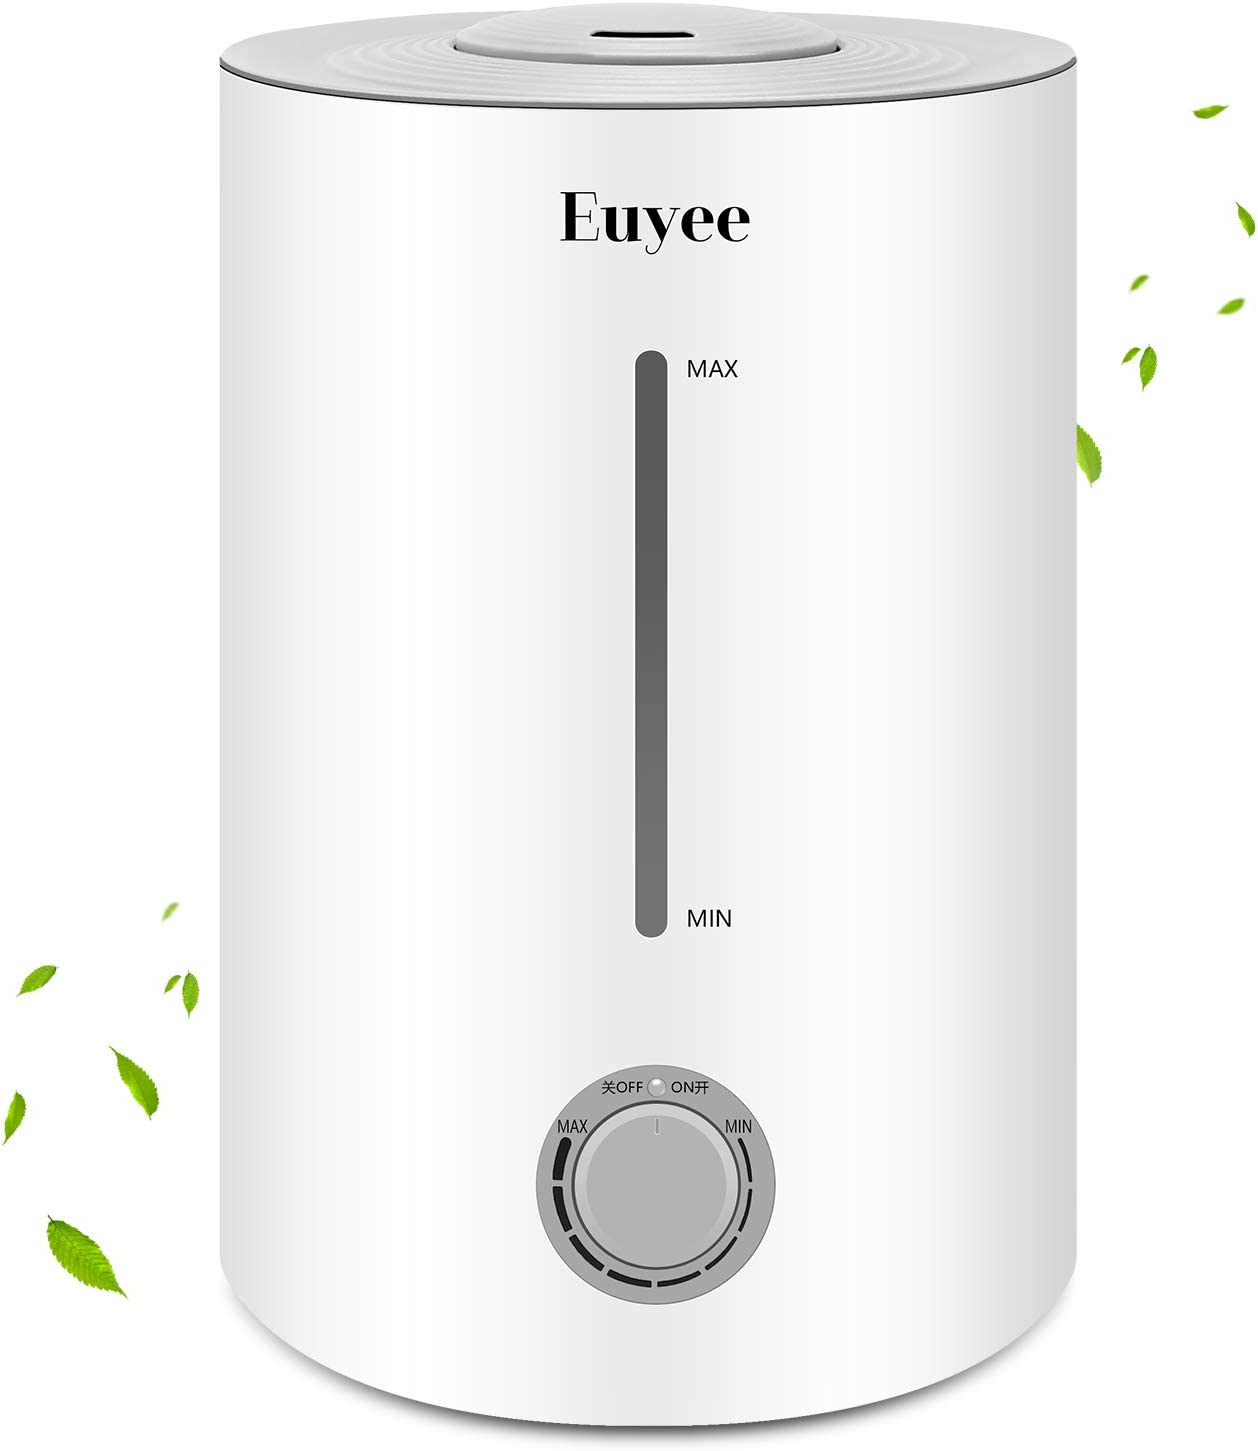 TTLIFE Ultrasonic Humidifiers Large Room, 5.5L Ionic Warm and Cool Mist Humidifiers for Bedroom Baby, Steam Vaporizer air humidifier with Essential Oils and Remote, Whisper Quiet Customized Humidity